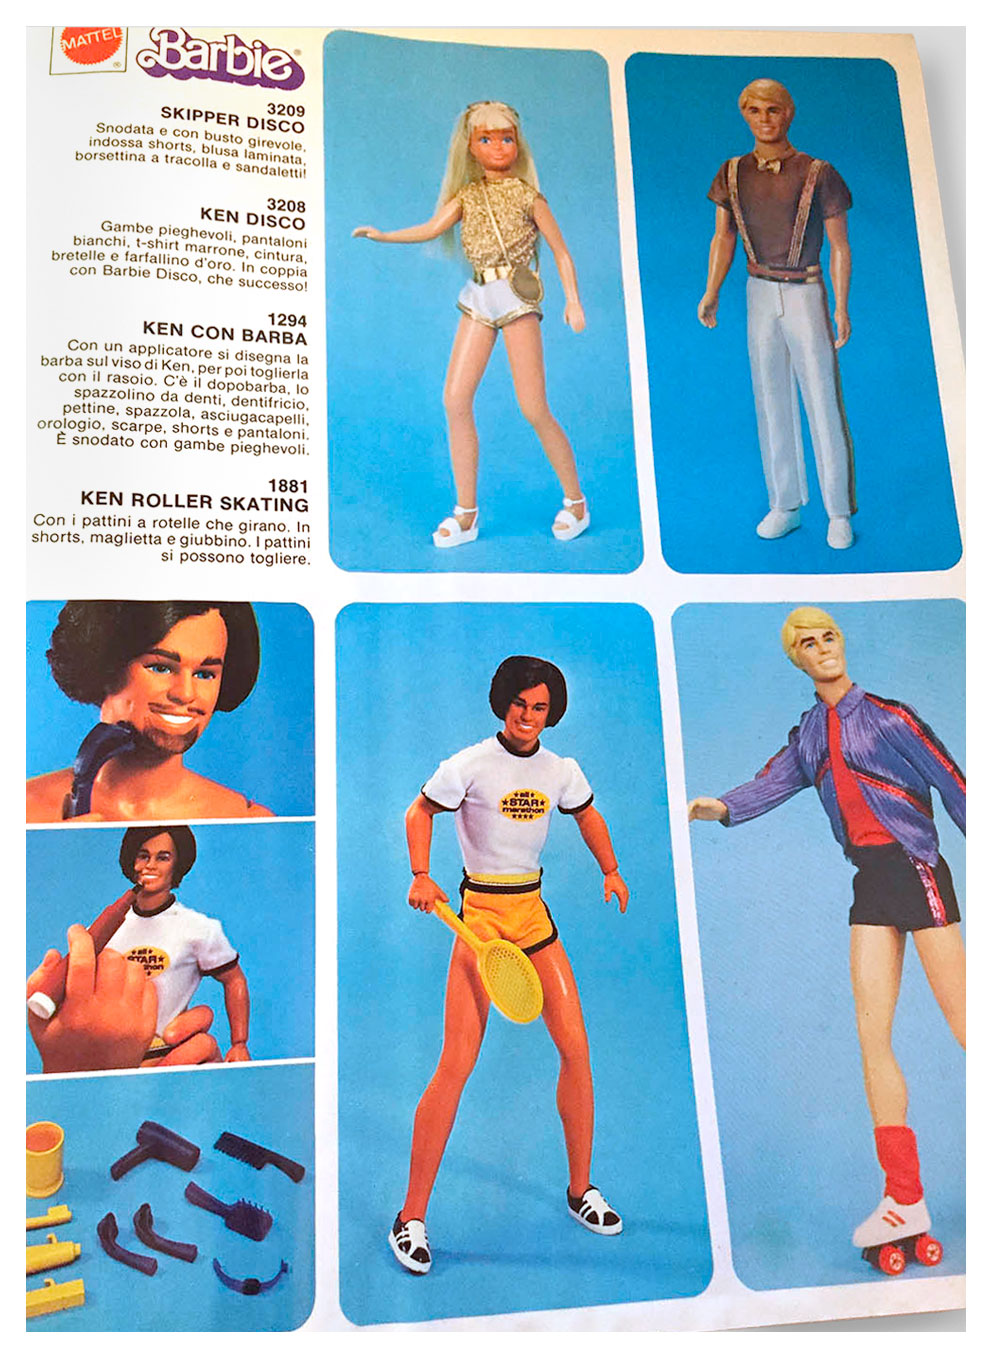 From Italian Mattel Giocattoli 1981 catalogue